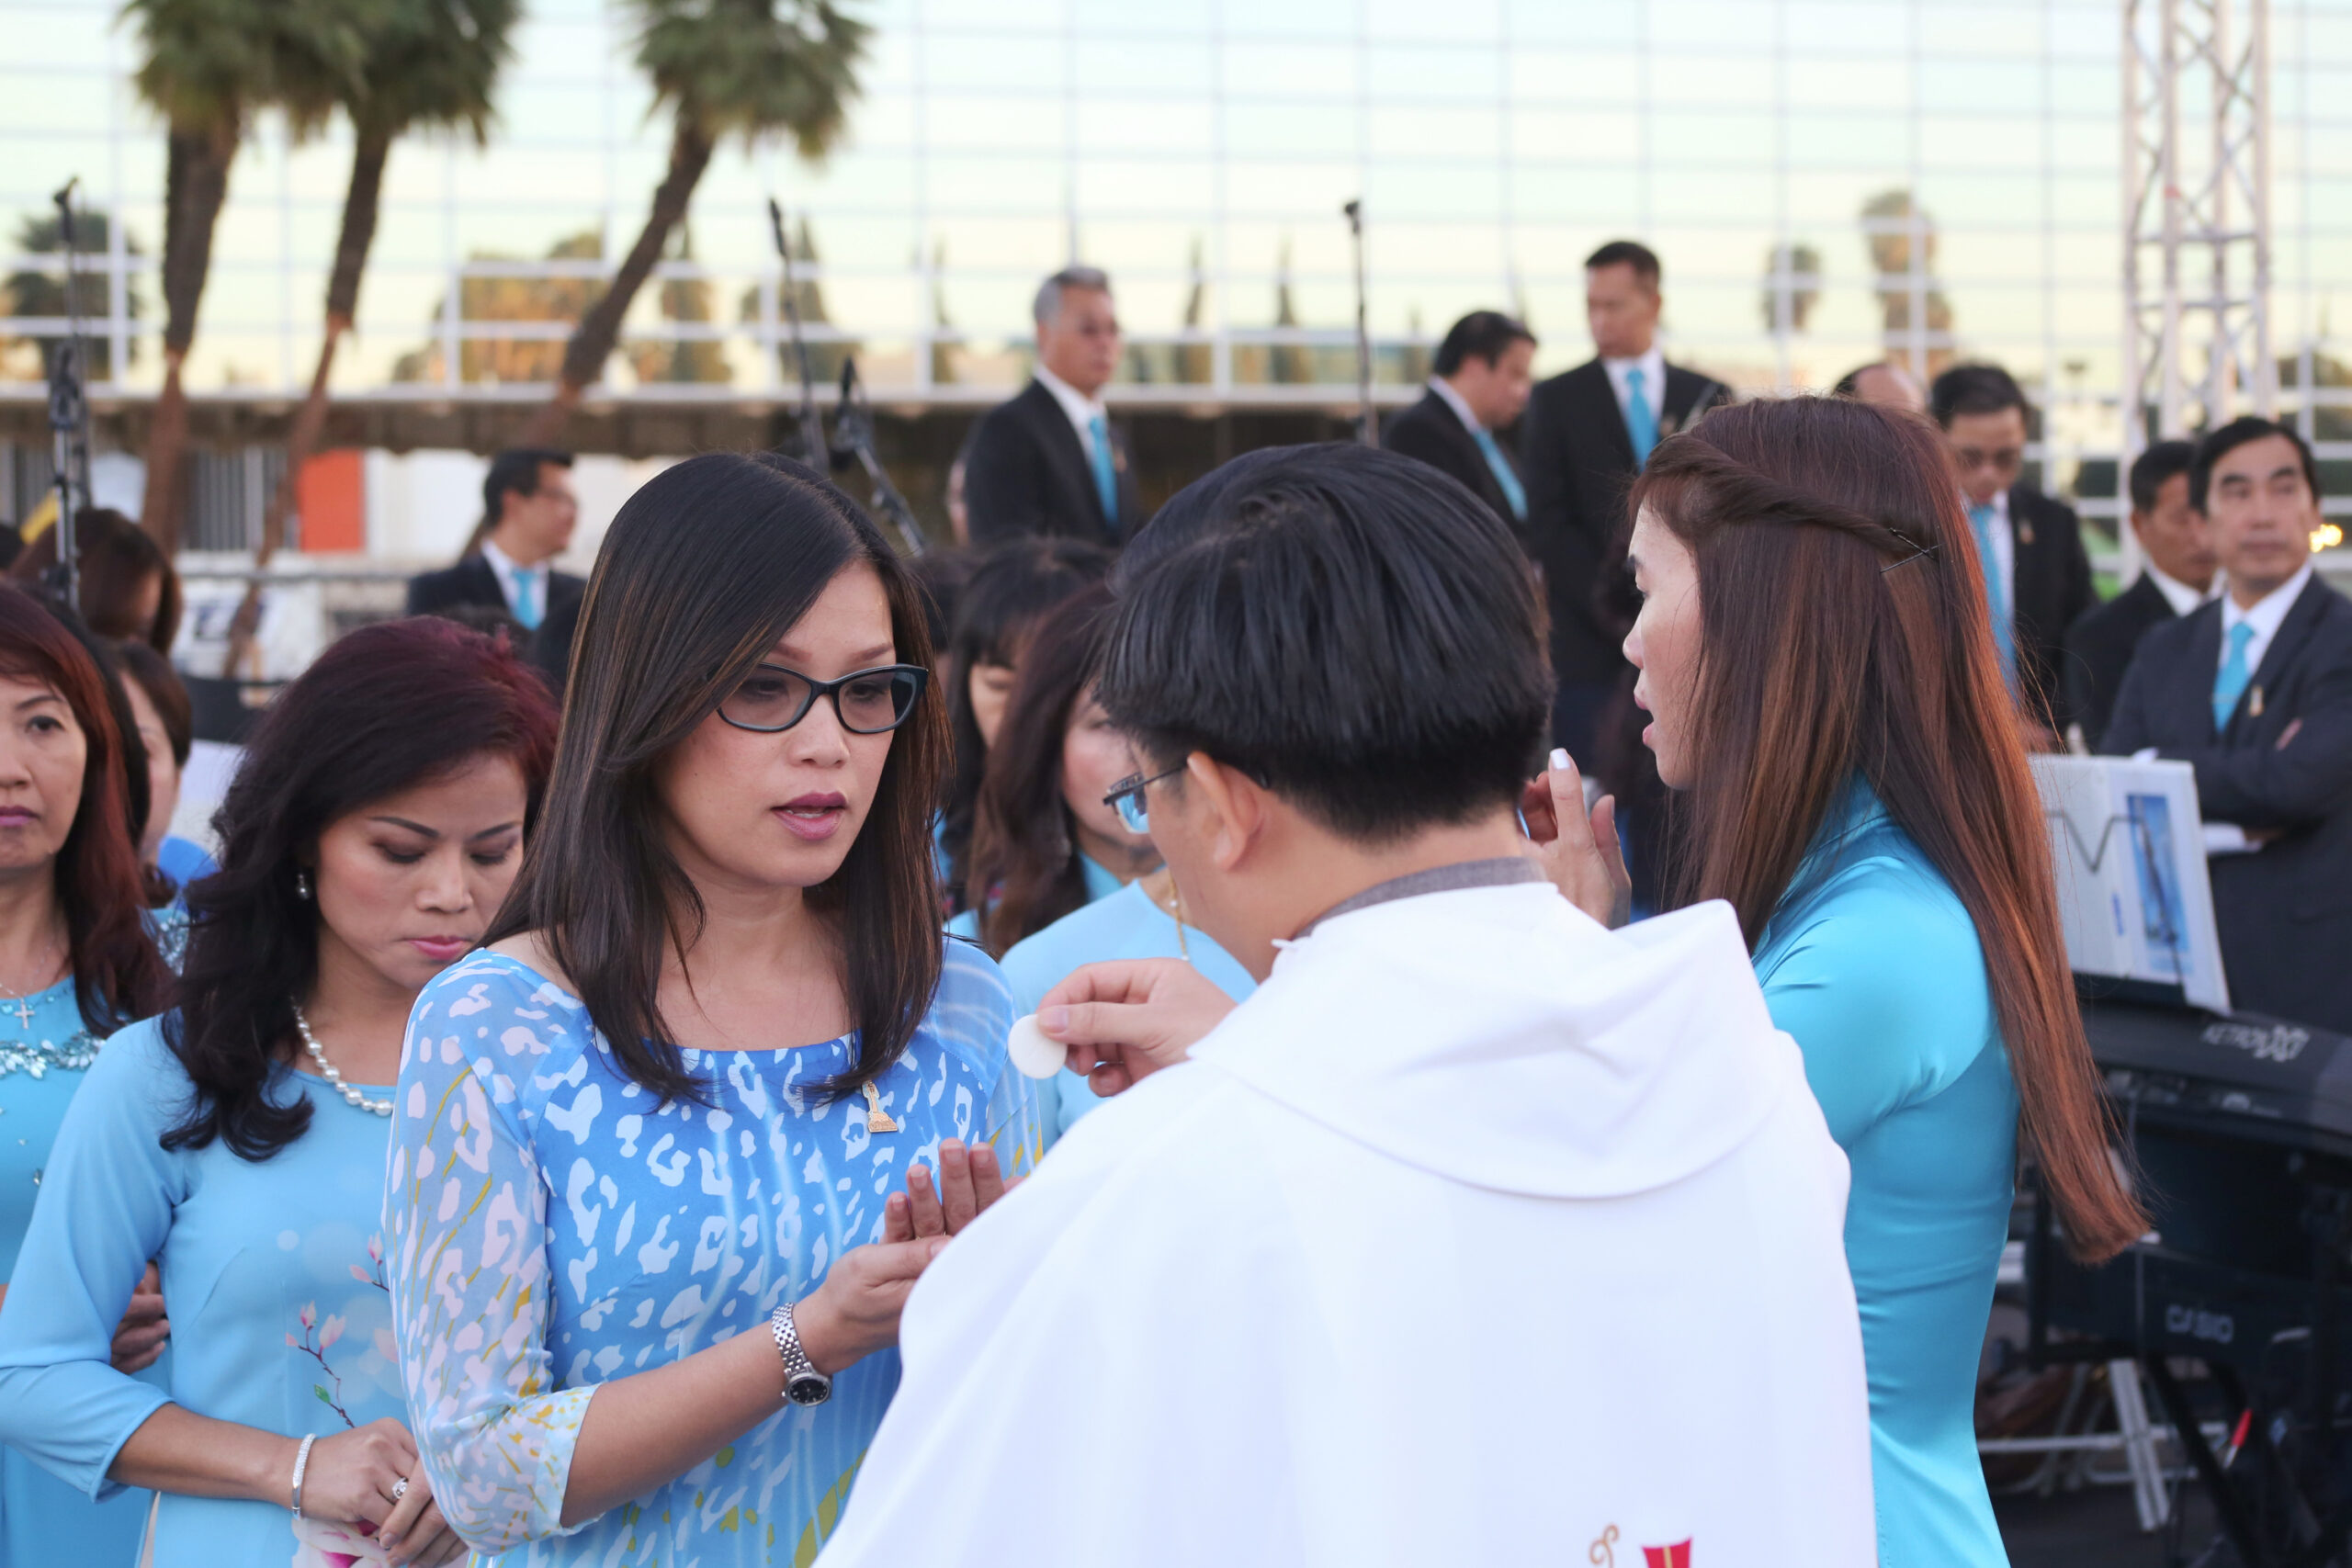 The outdoor Mass on Saturday, Oct. 21, 2017 was attended by many Vietnamese Catholics who were looking forward to the construction of the shrine that honors the Blessed Mother. Photo courtesy Diocese of Orange.